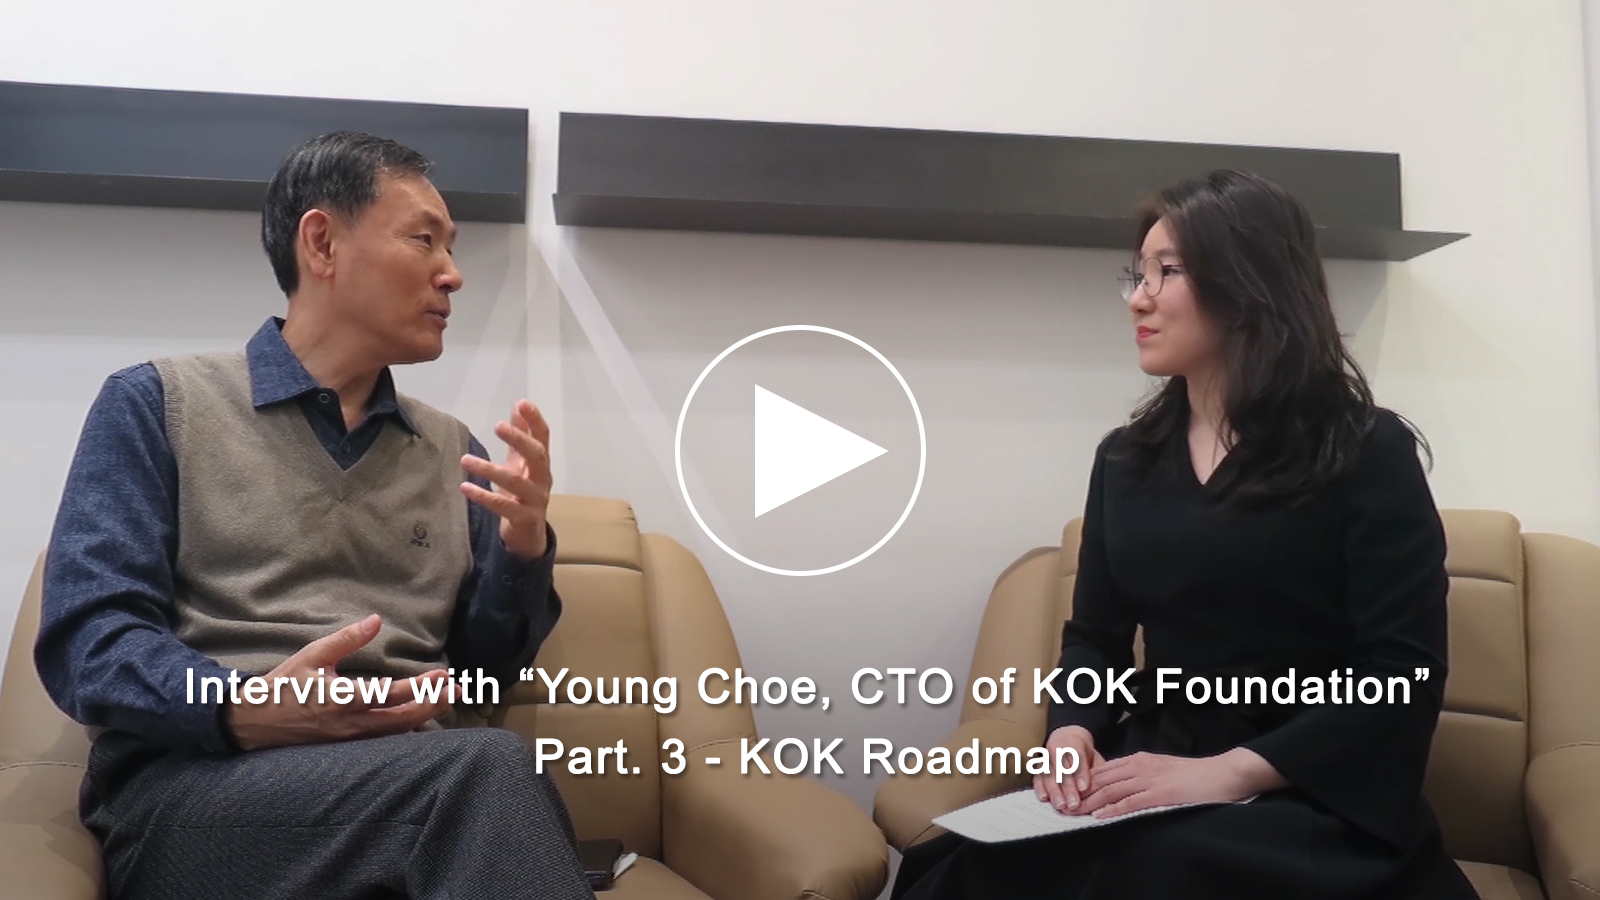 Interview with CTO Young Choe Part. 3 - KOK Roadmap